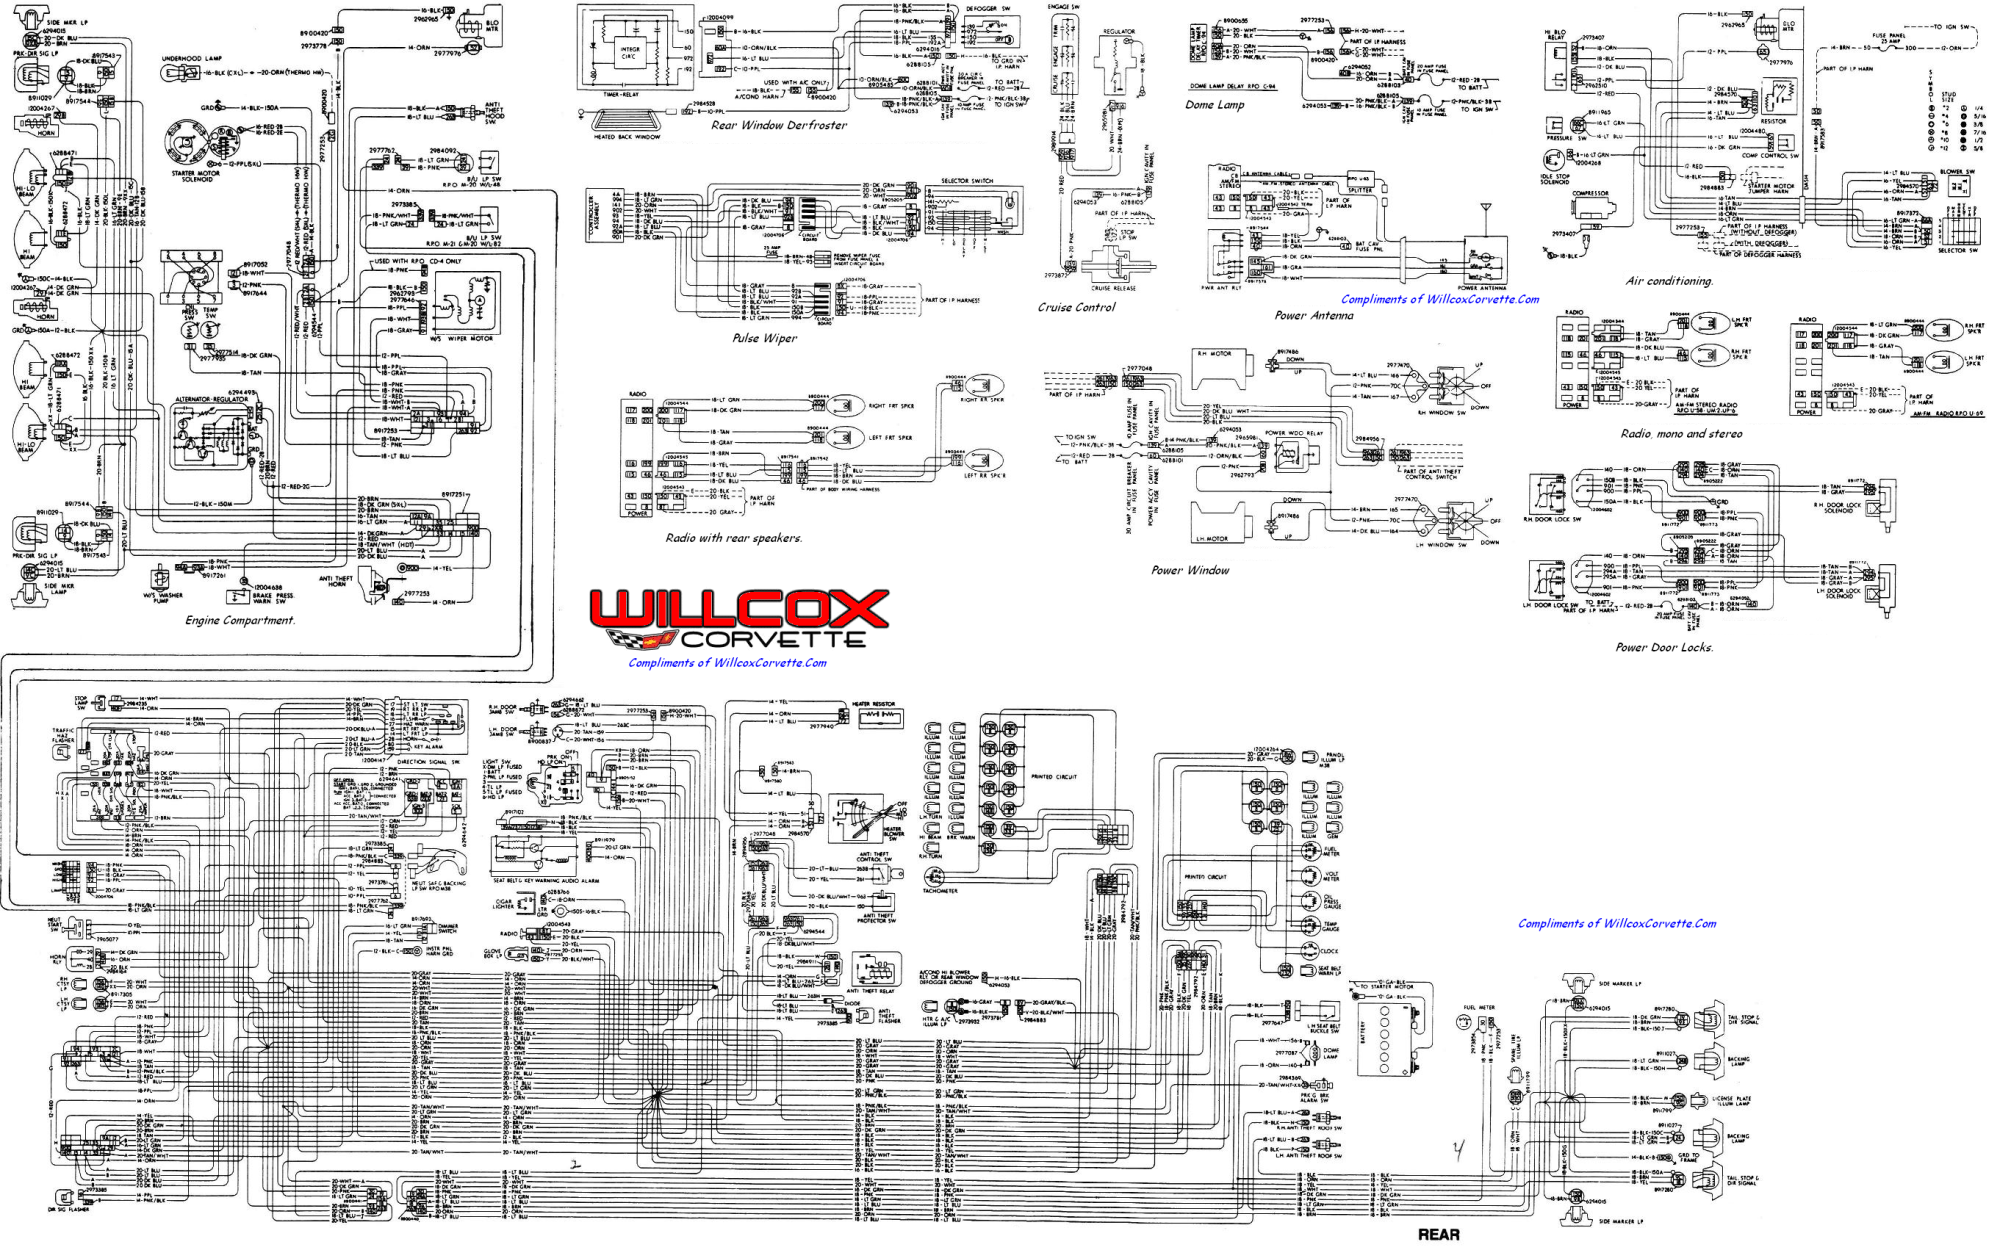 hight resolution of 82 oldsmobile fuse box diagram wiring diagrams img82 oldsmobile fuse box diagram simple wiring post 1996